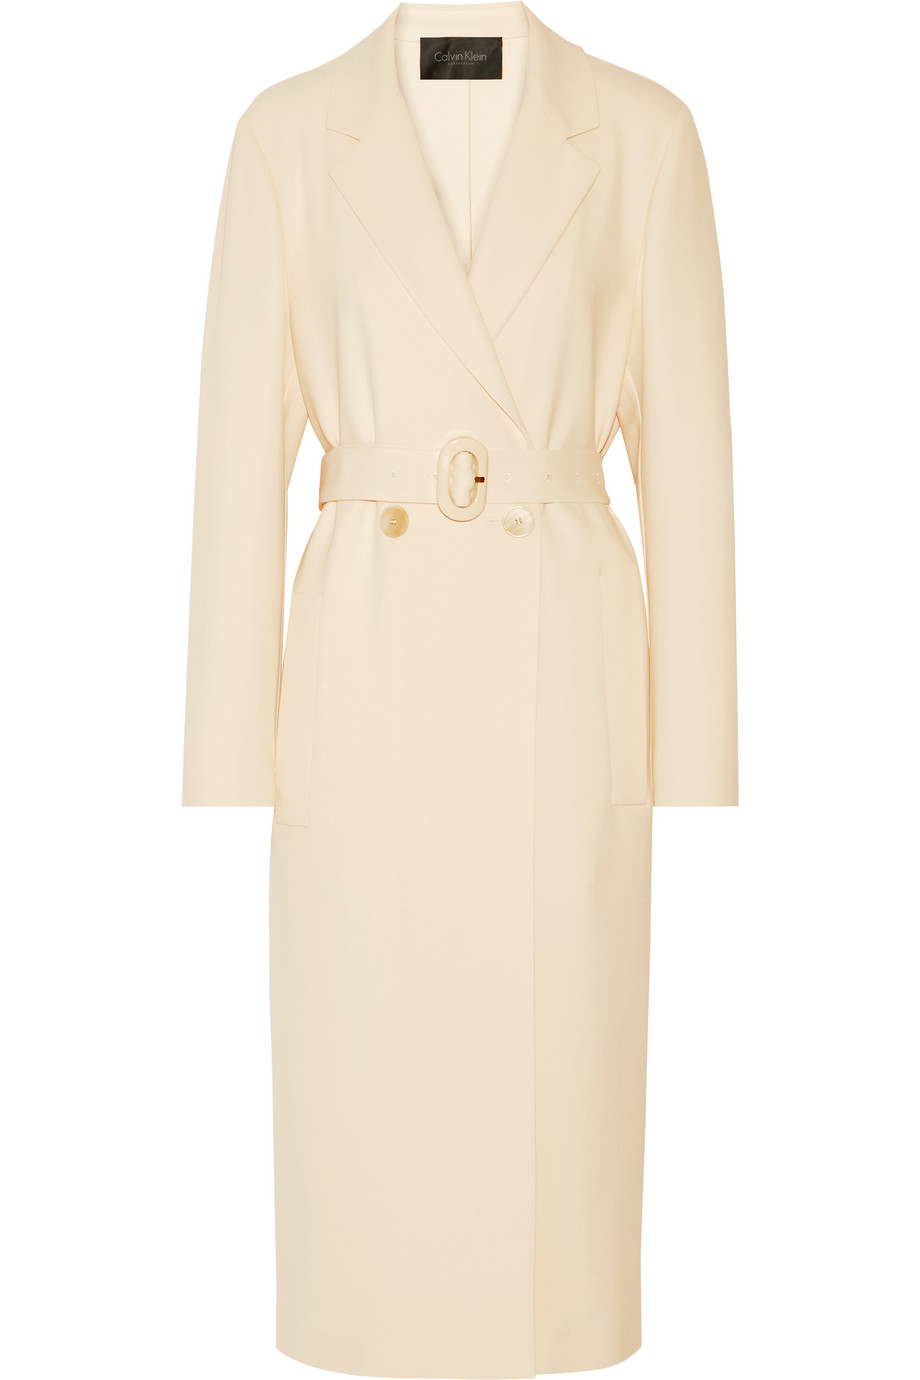 Stretch-Crepe Trench Coat, Calvin Klein Collection, Beige, Women's, Size: 42